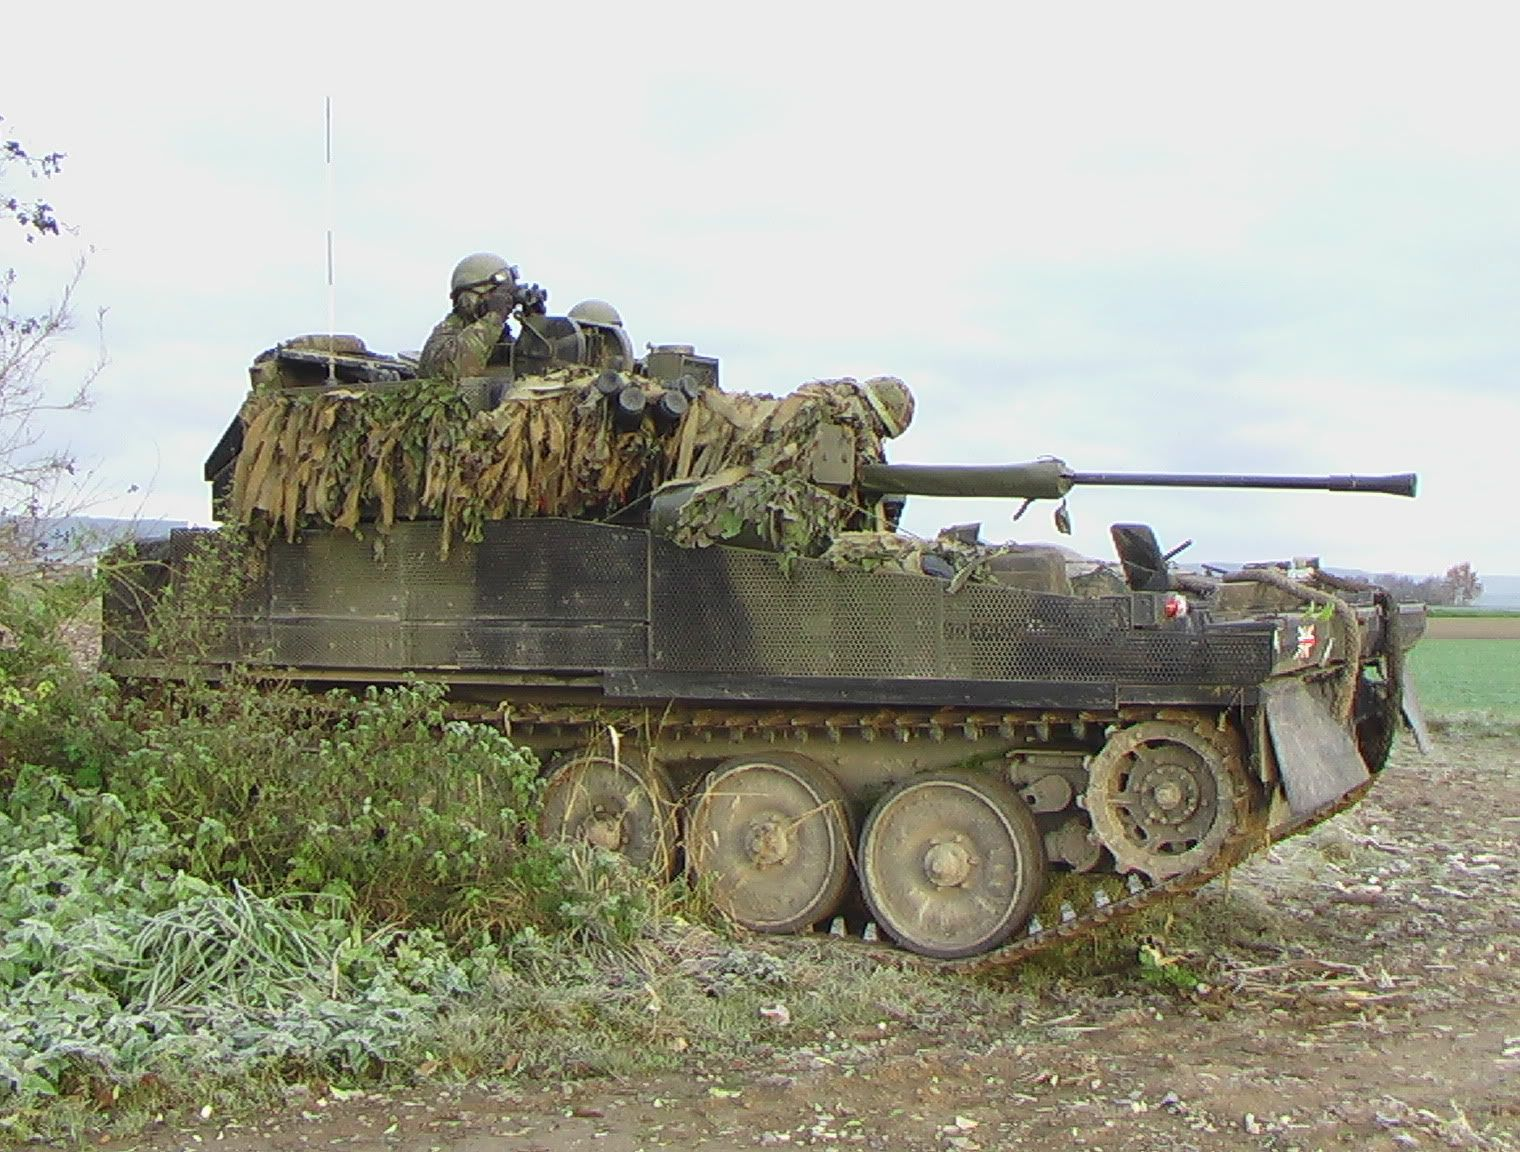 Scimitar With Images Tanks Military British Tank Army Vehicles